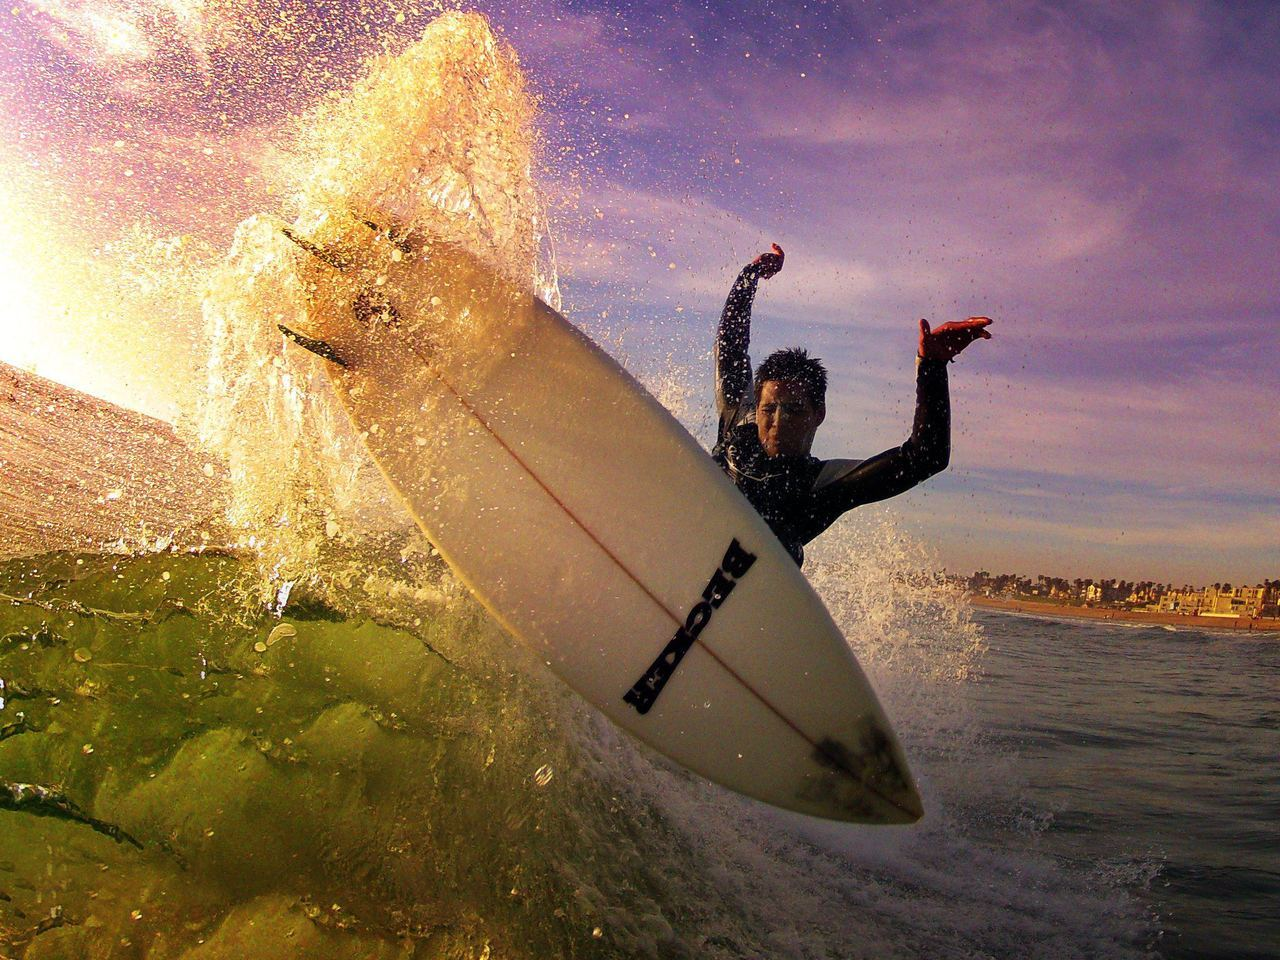 justjobe:   via@GoPro Sunset at the beach with shredder Jarrod Bell. Photo by GoPro superfan Robbie Crawford.Happy International Surf Day! Get out and surf!